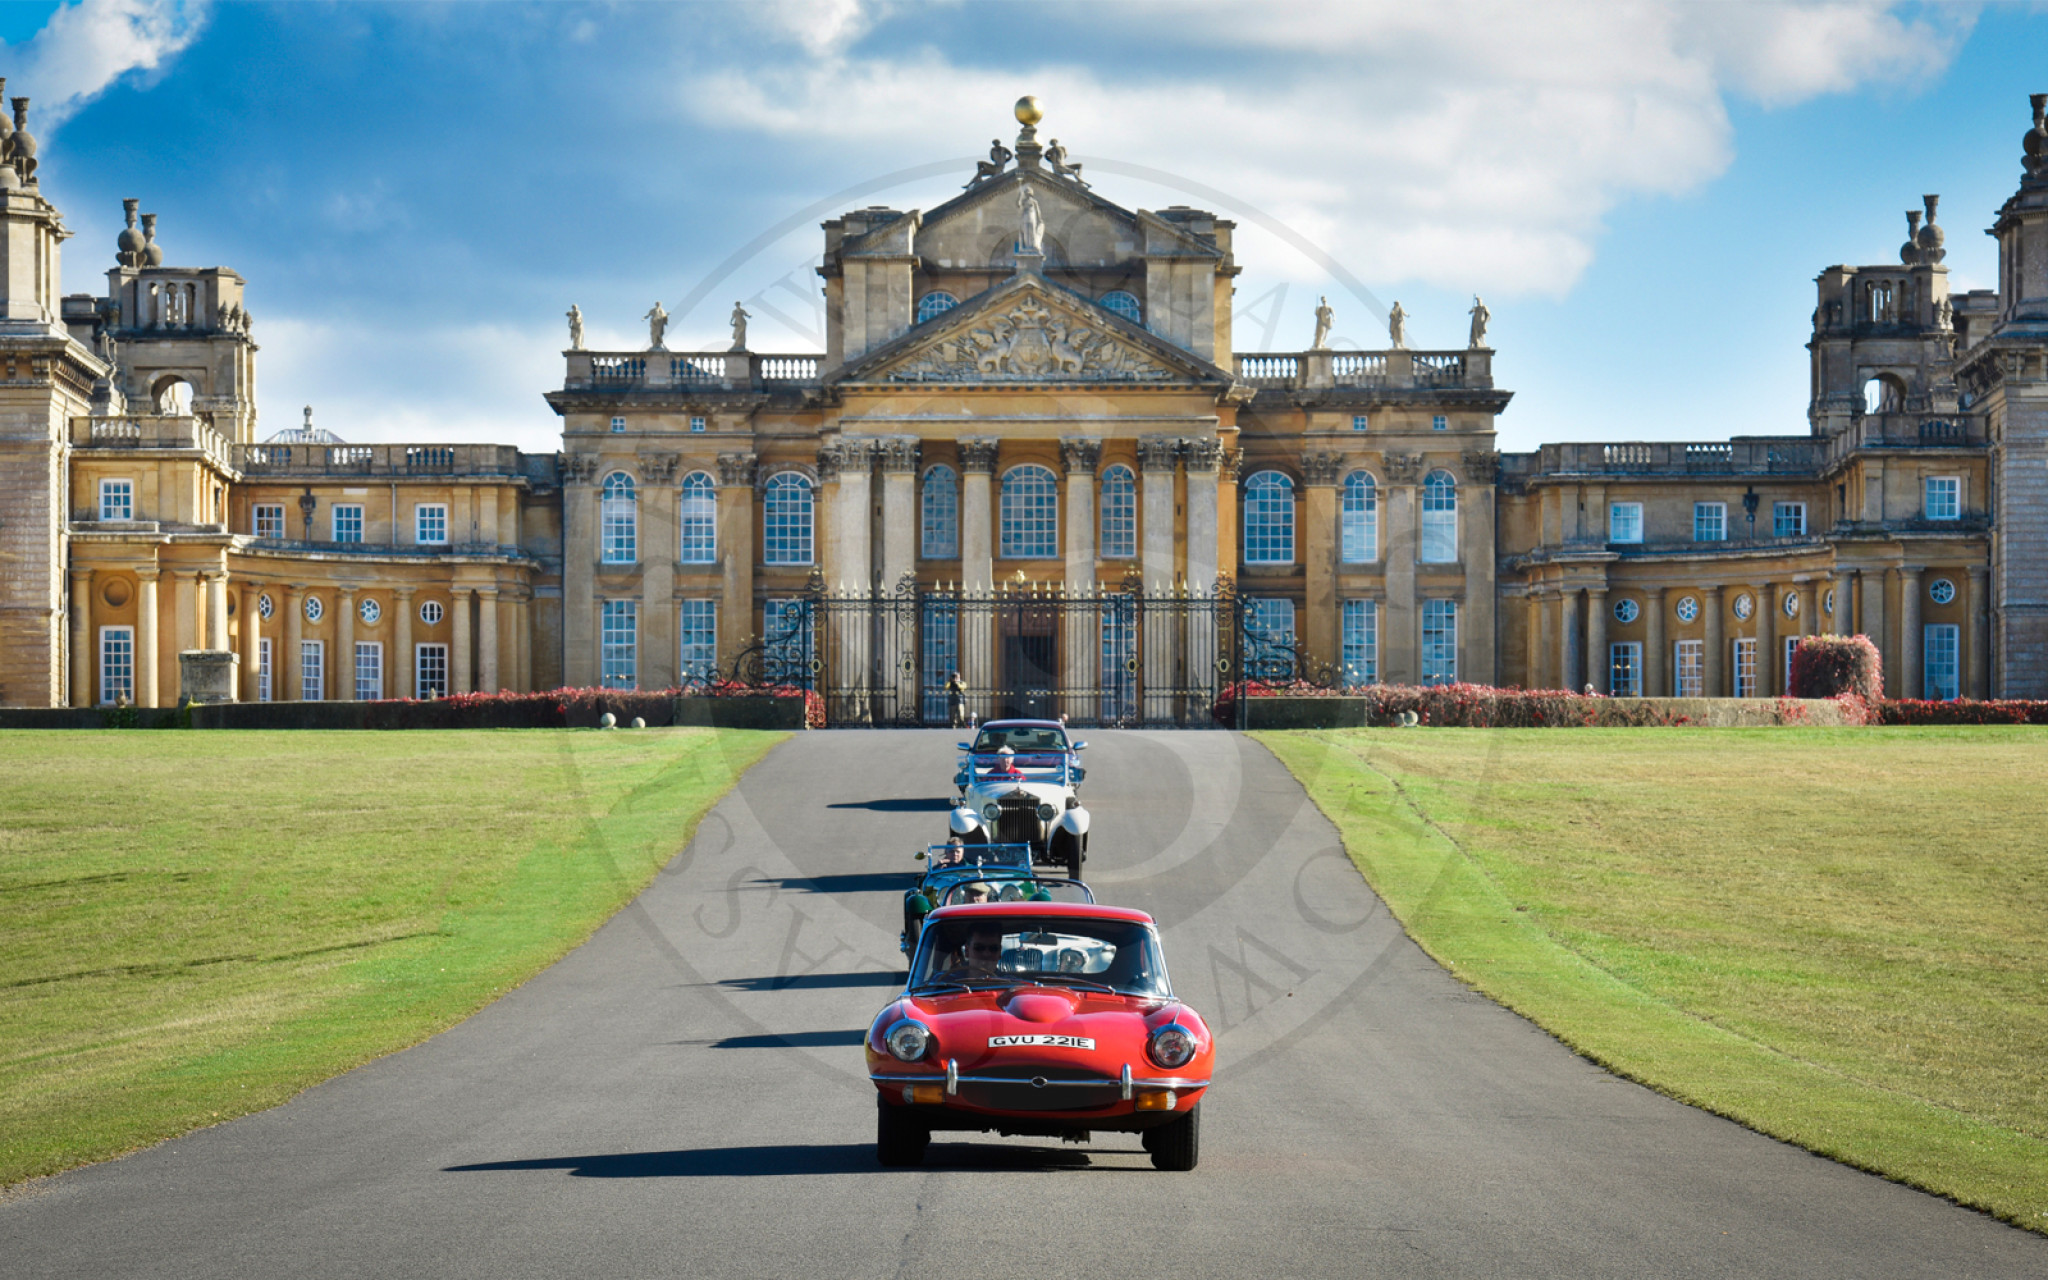 Blenheim-Festival-of-Transport-24-25-August-2014-Gallery-002.jpg